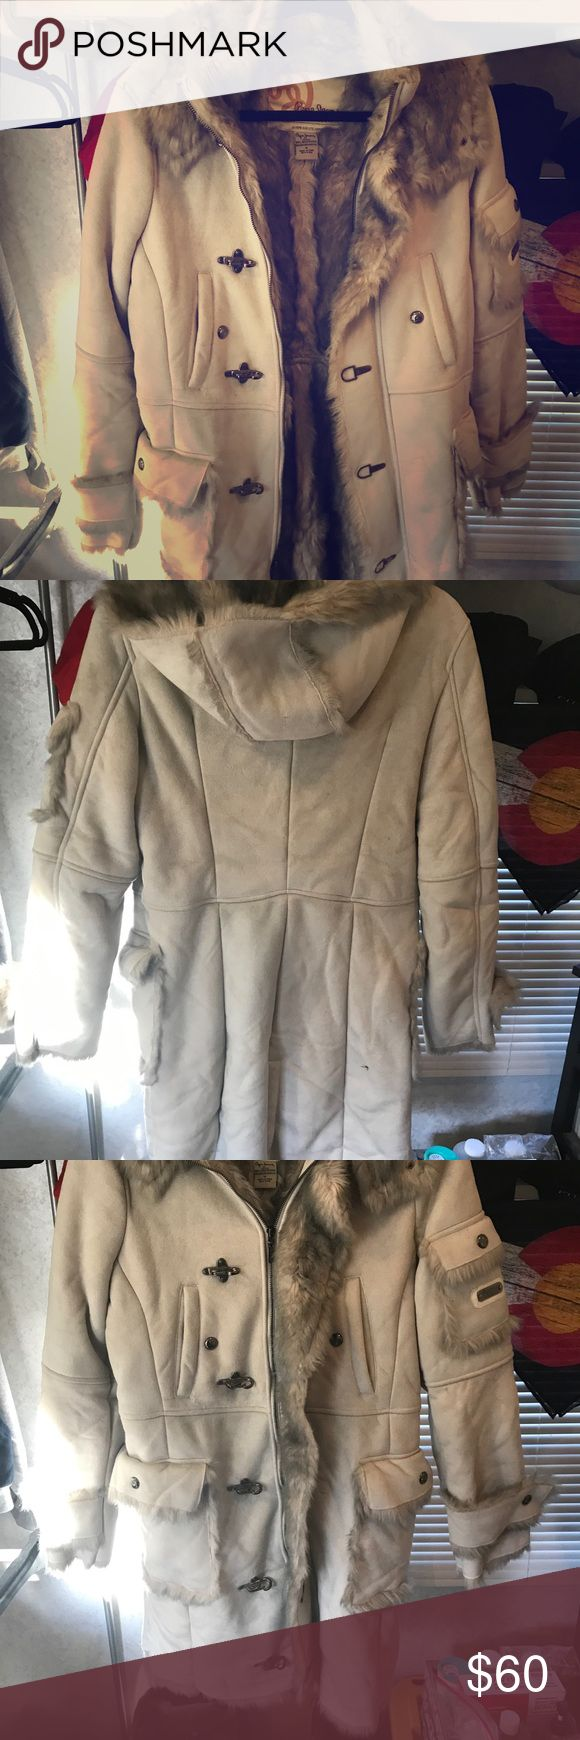 Beautiful winter coat Medium long length  Heavy warm Faux fur Removable hood  I can live in this coat... but I must downsize Pepe Jeans Jackets & Coats Pea Coats